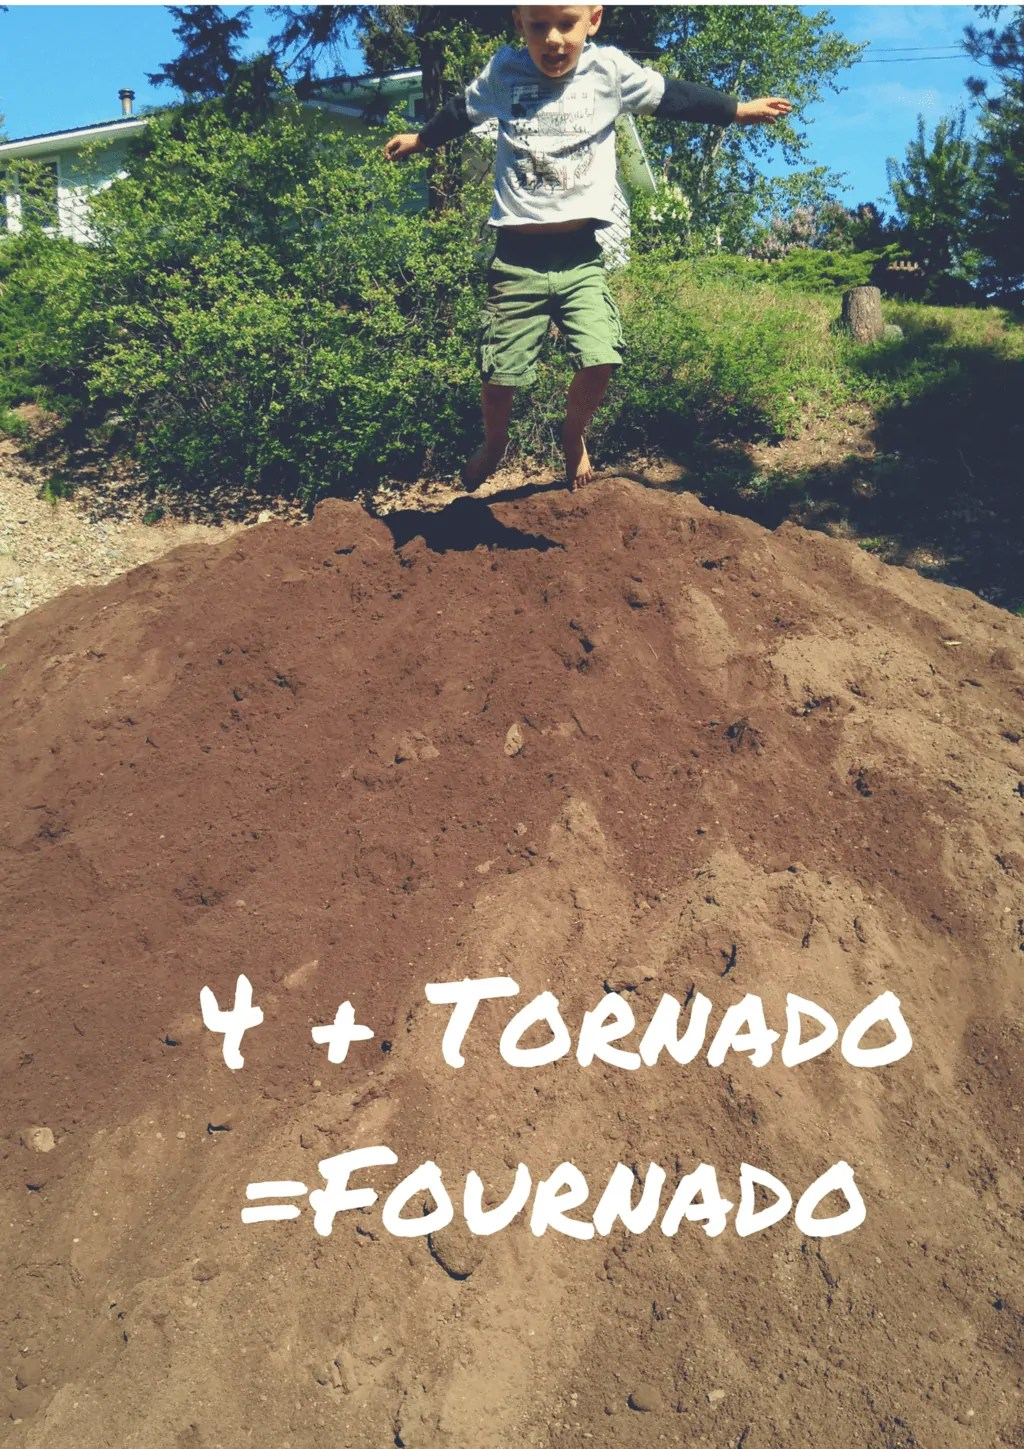 So….Fournado is a real thing